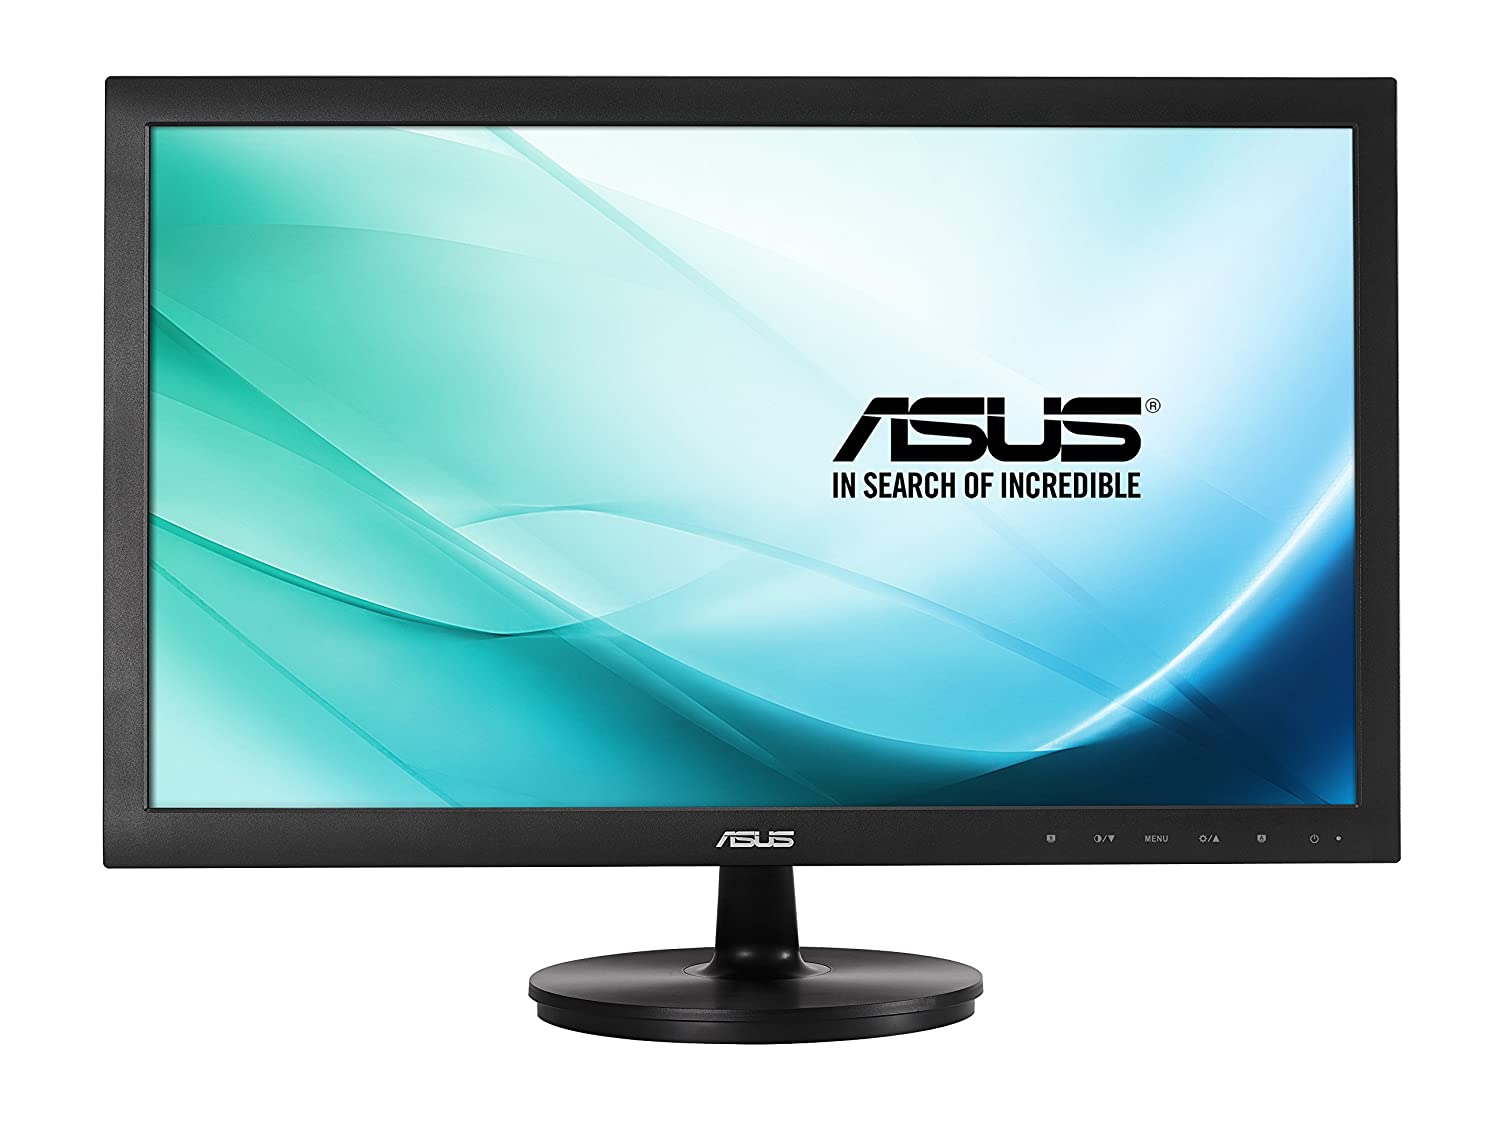 "ASUS VS247H-P 23.6"" Full HD 1920x1080 2ms HDMI DVI-D VGA Back-lit LED Monitor"